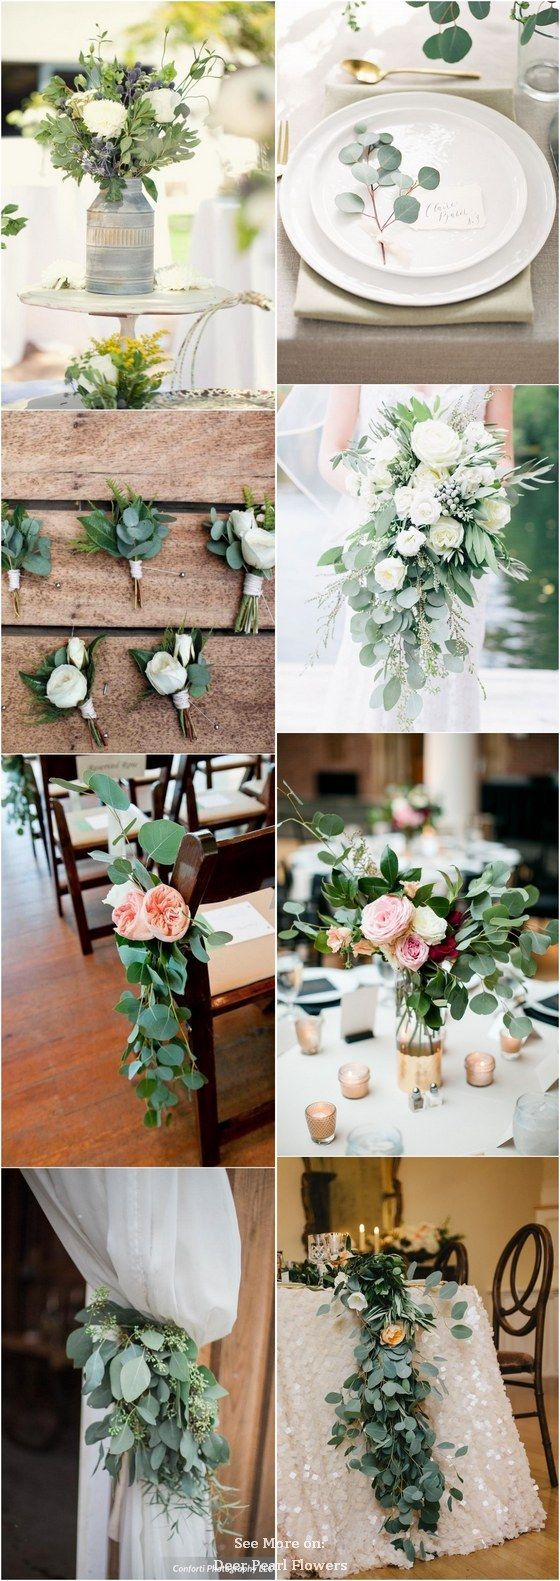 greenery eucalyptus wedding decor ideas mrs vertalka